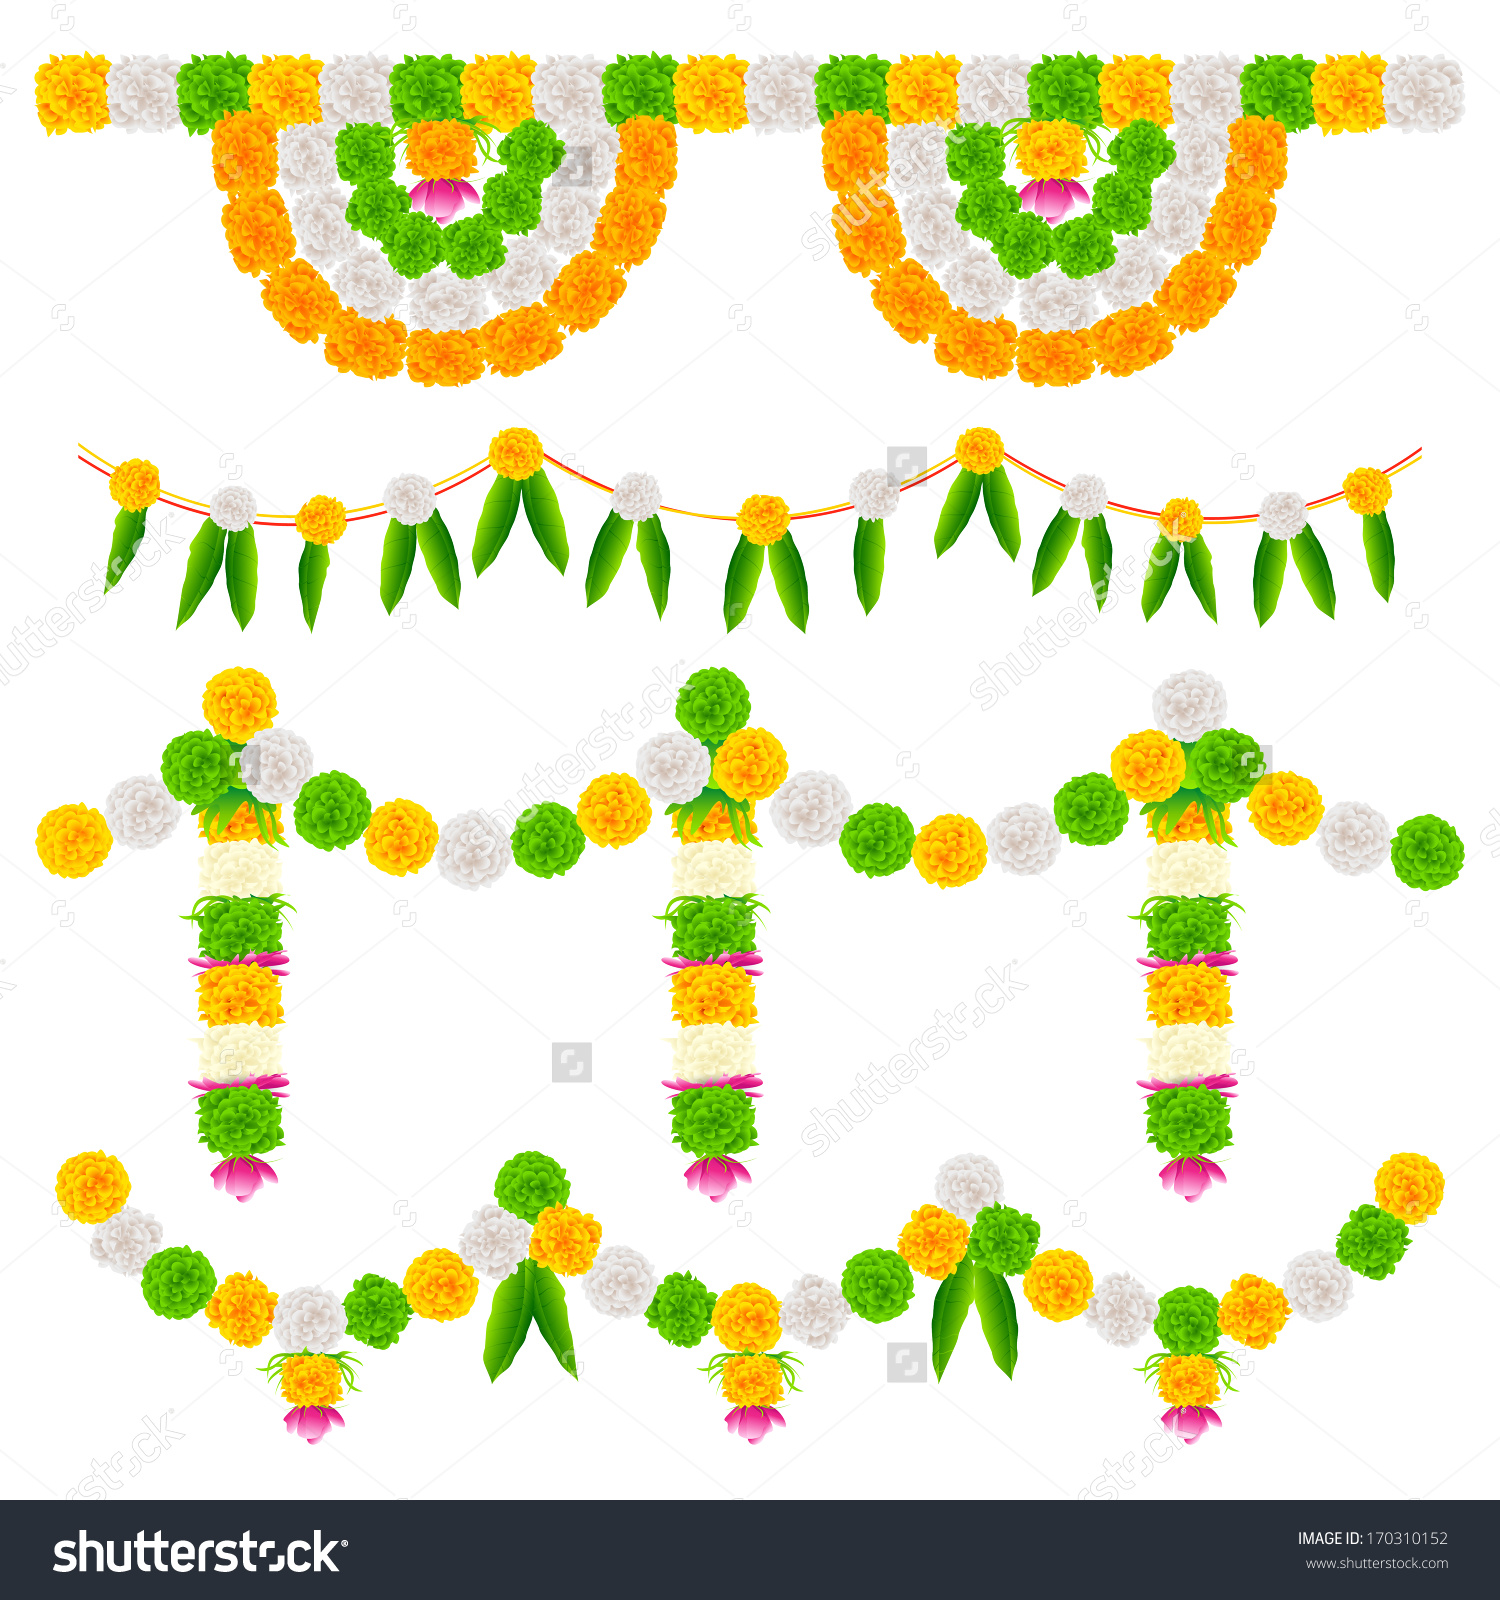 Indian flower clipart clipground illustration of tri color flower arrangement for india festival decoration indian wedding clipart junglespirit Choice Image